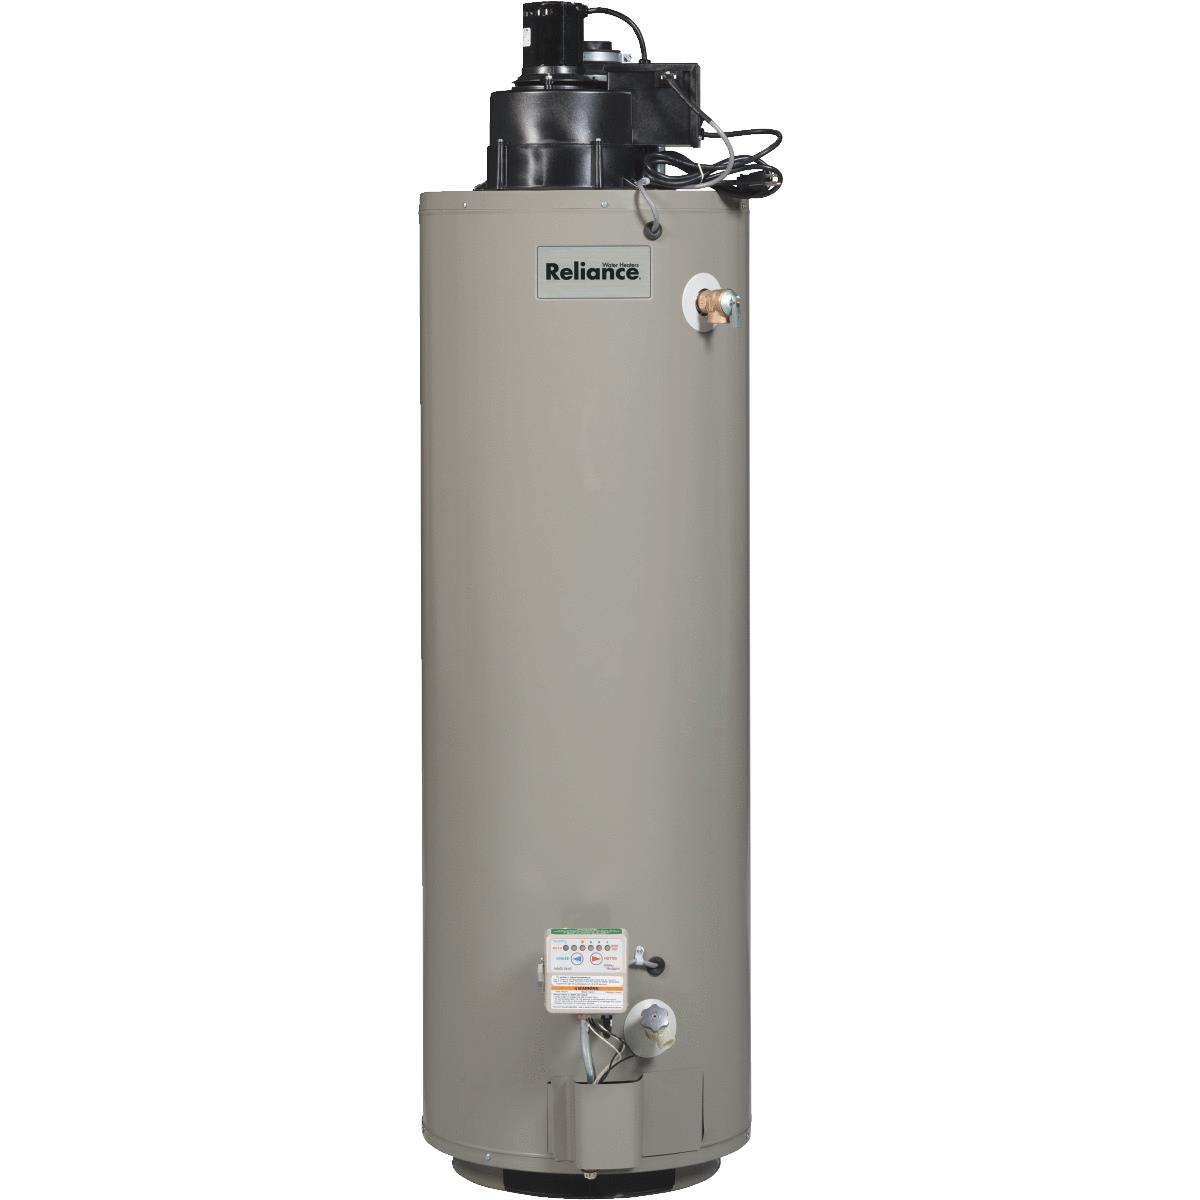 Reliance 40gal Liquid Propane (LP) Gas Water Heater With ...